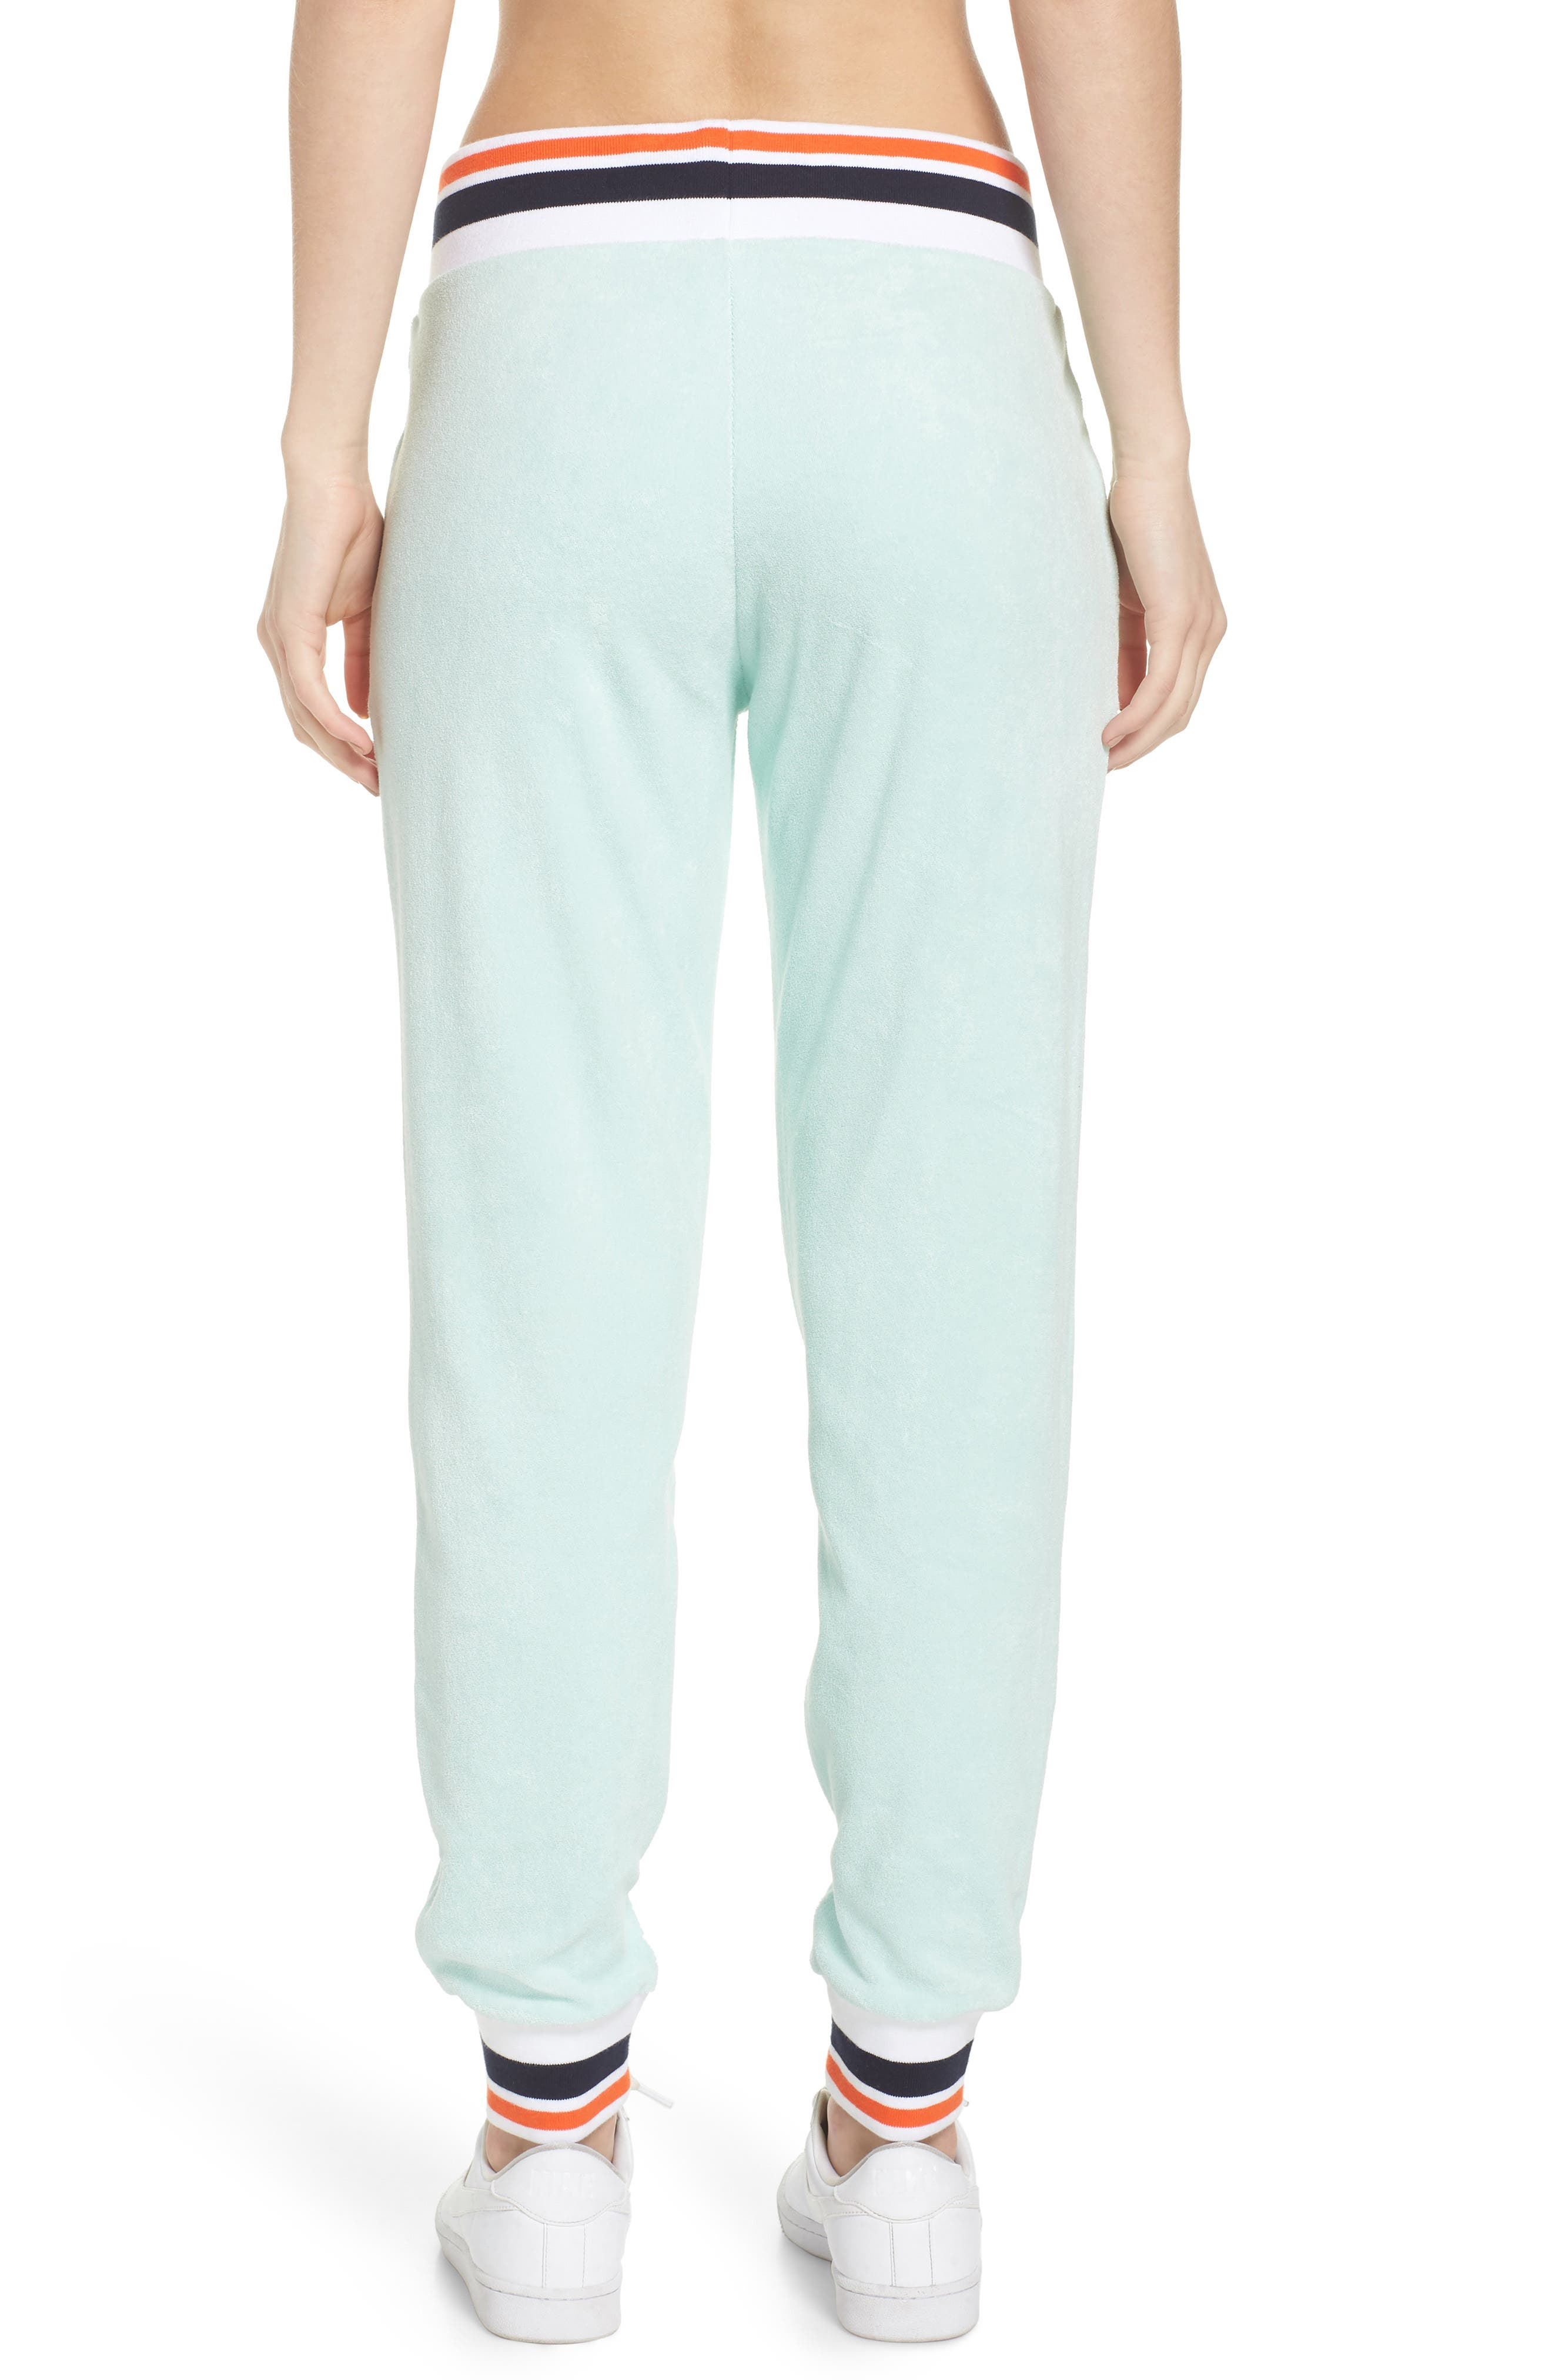 Sportswear French Terry Pants,                             Alternate thumbnail 2, color,                             401